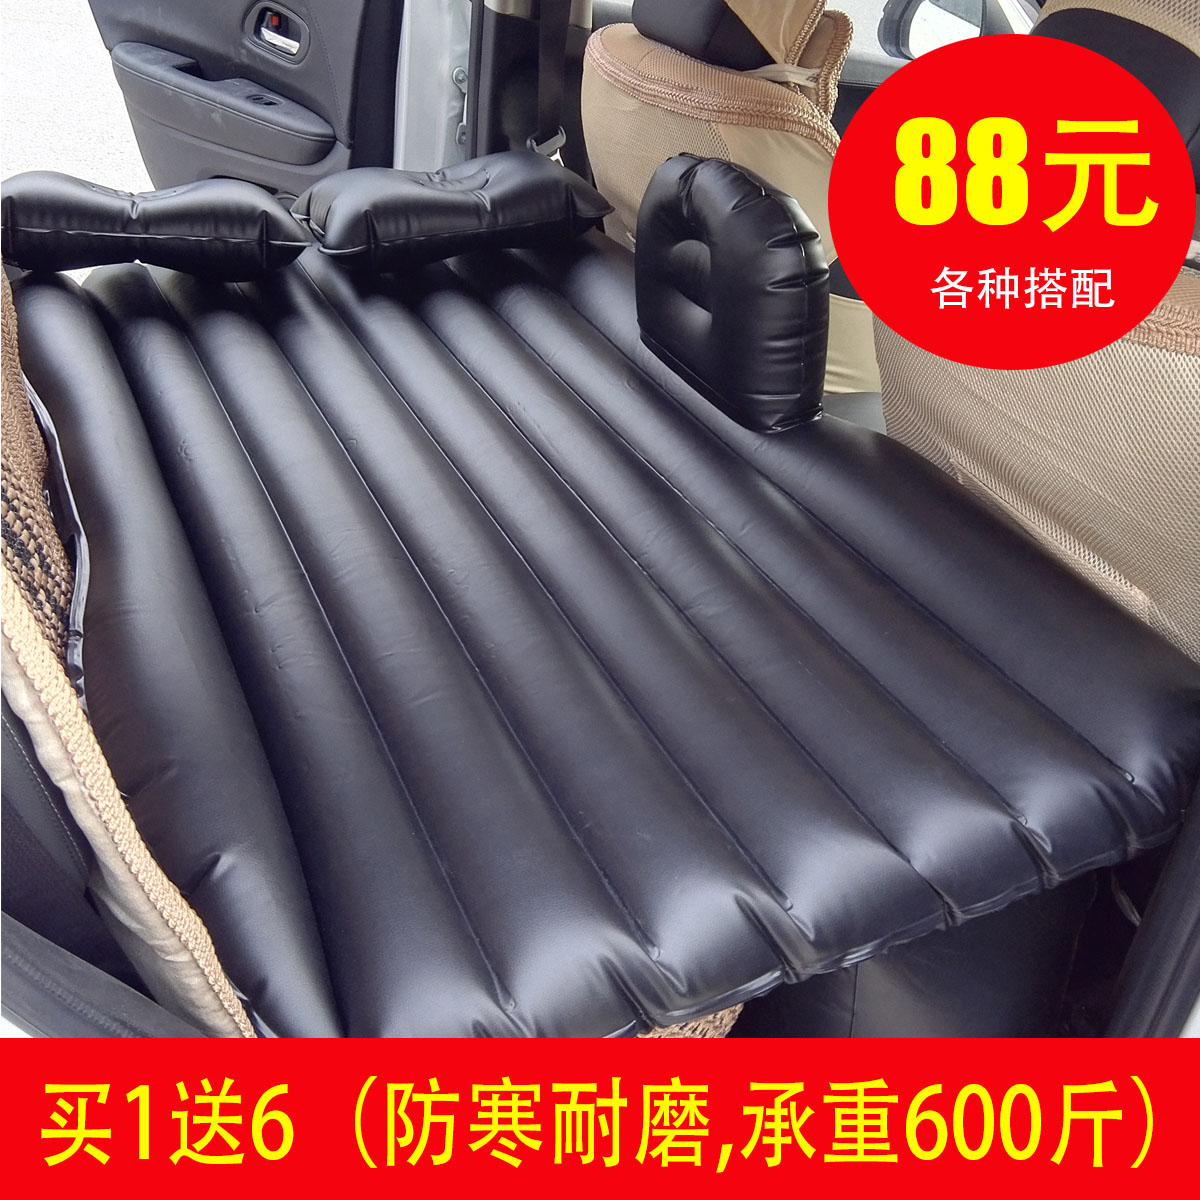 2016 Citroen C4lC5 C4Aircross car Elysee Sega inflatable bed Che Zhenchuang Picasso